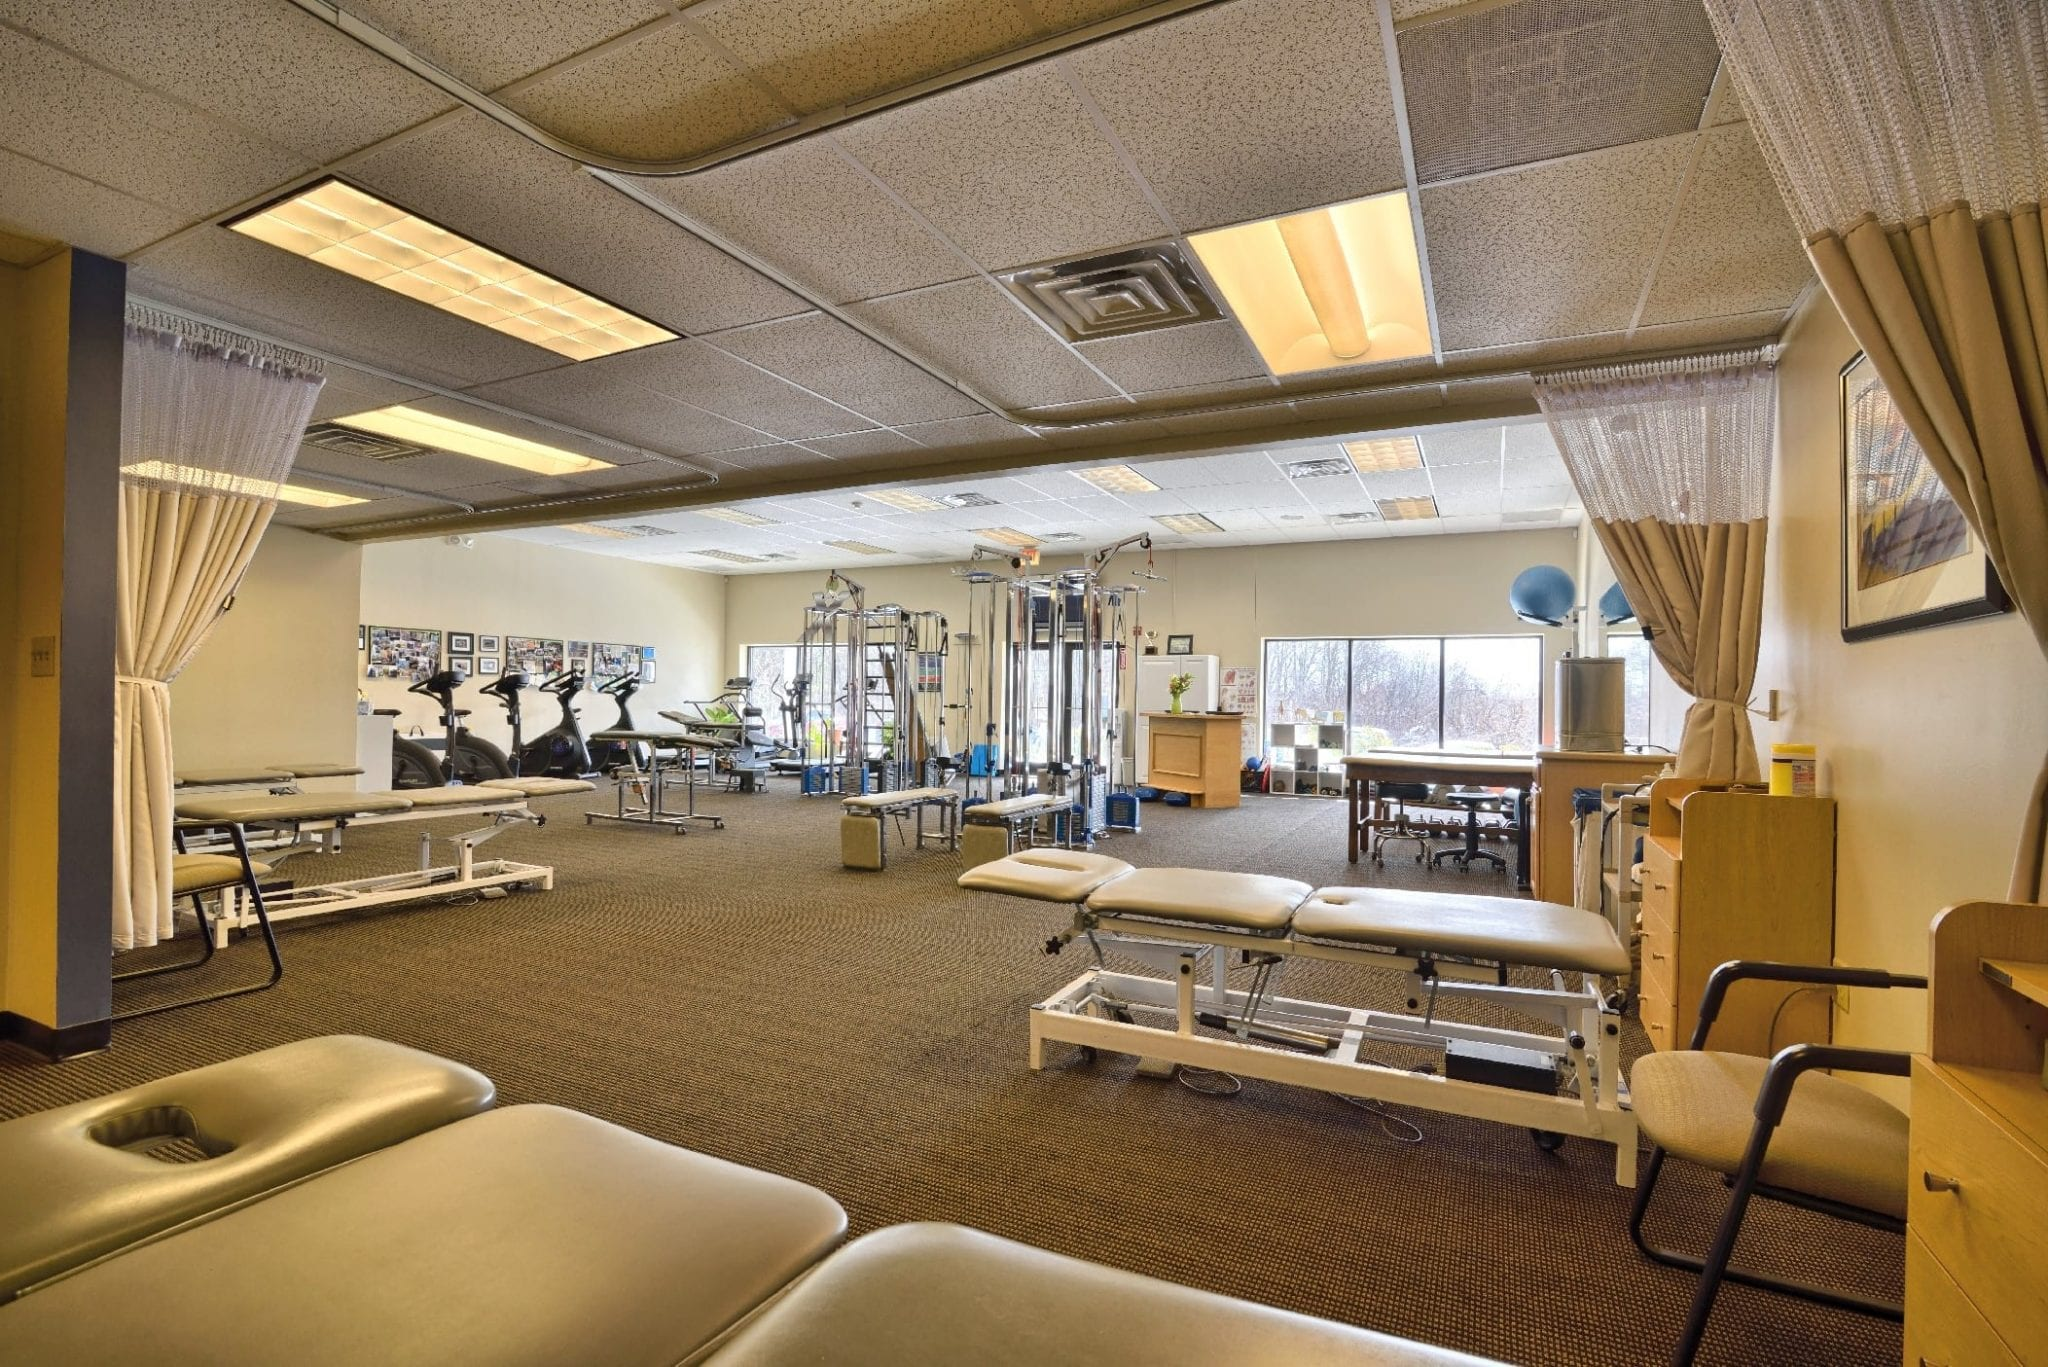 A photo of the interior of our physical therapy clinic in Stratham, New Hampshire.